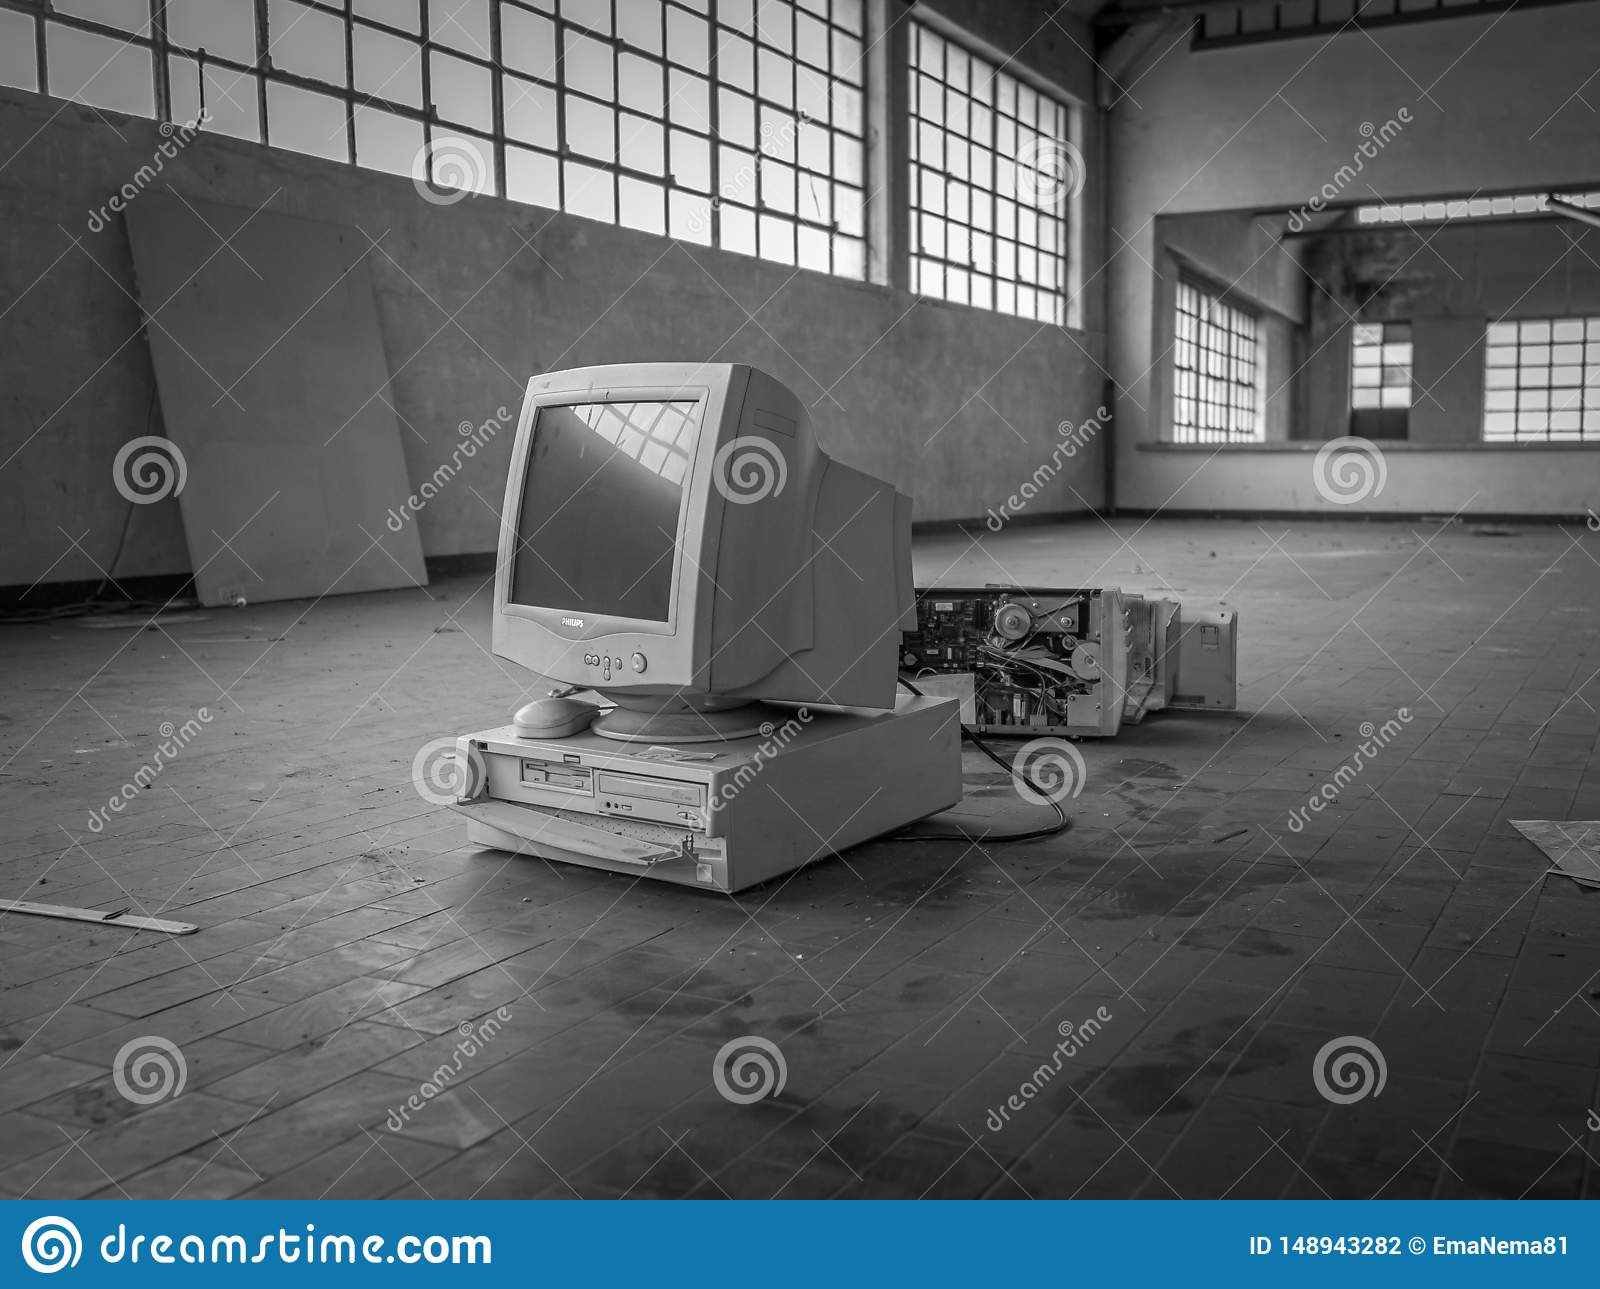 Old generation computer in warehouse, black and white.